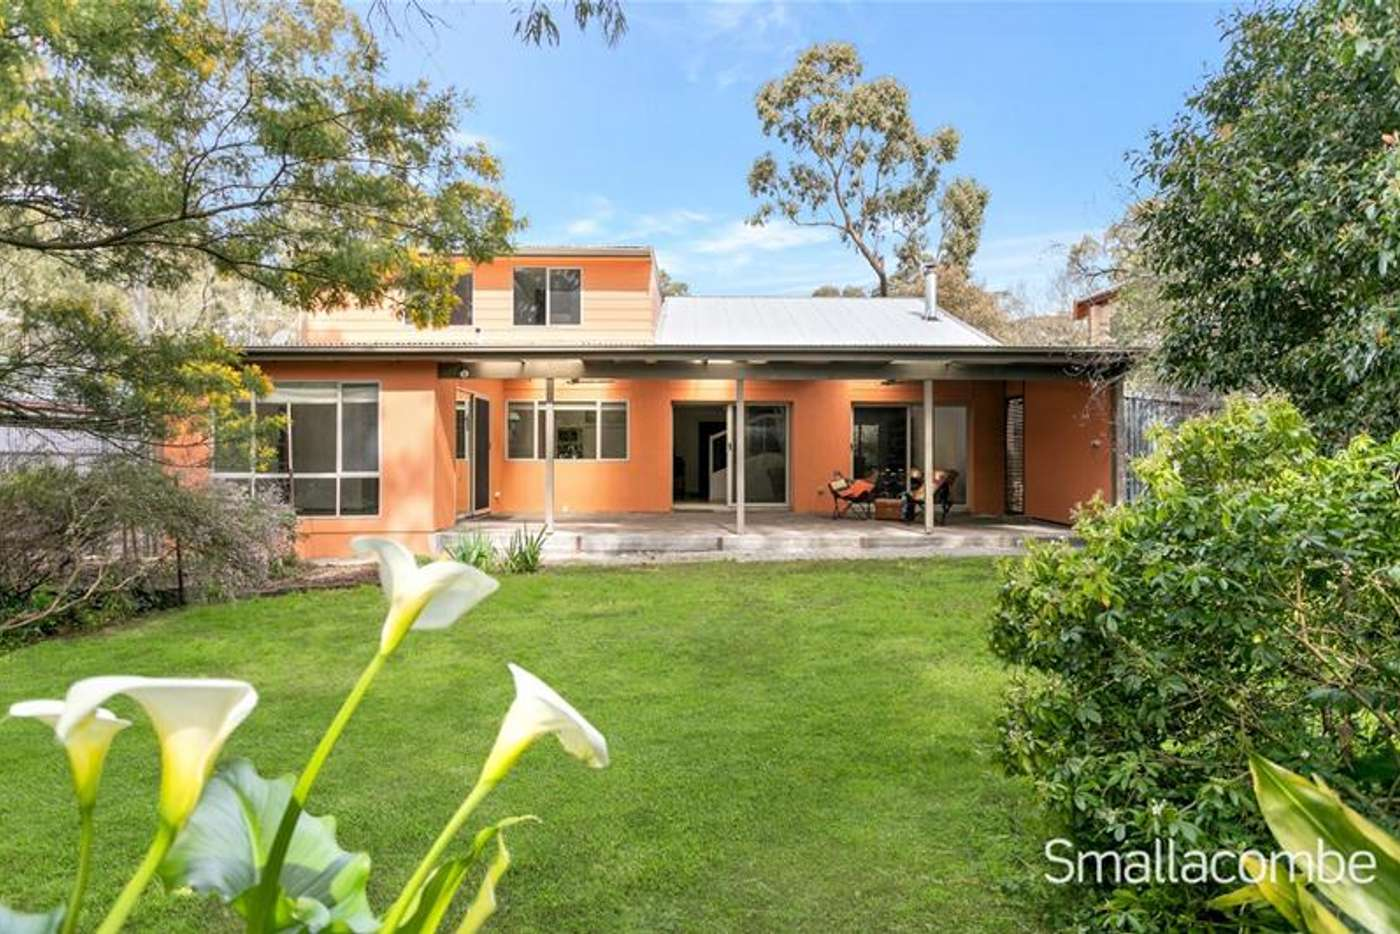 Sixth view of Homely house listing, 23 Darwin Avenue, Hawthorndene SA 5051